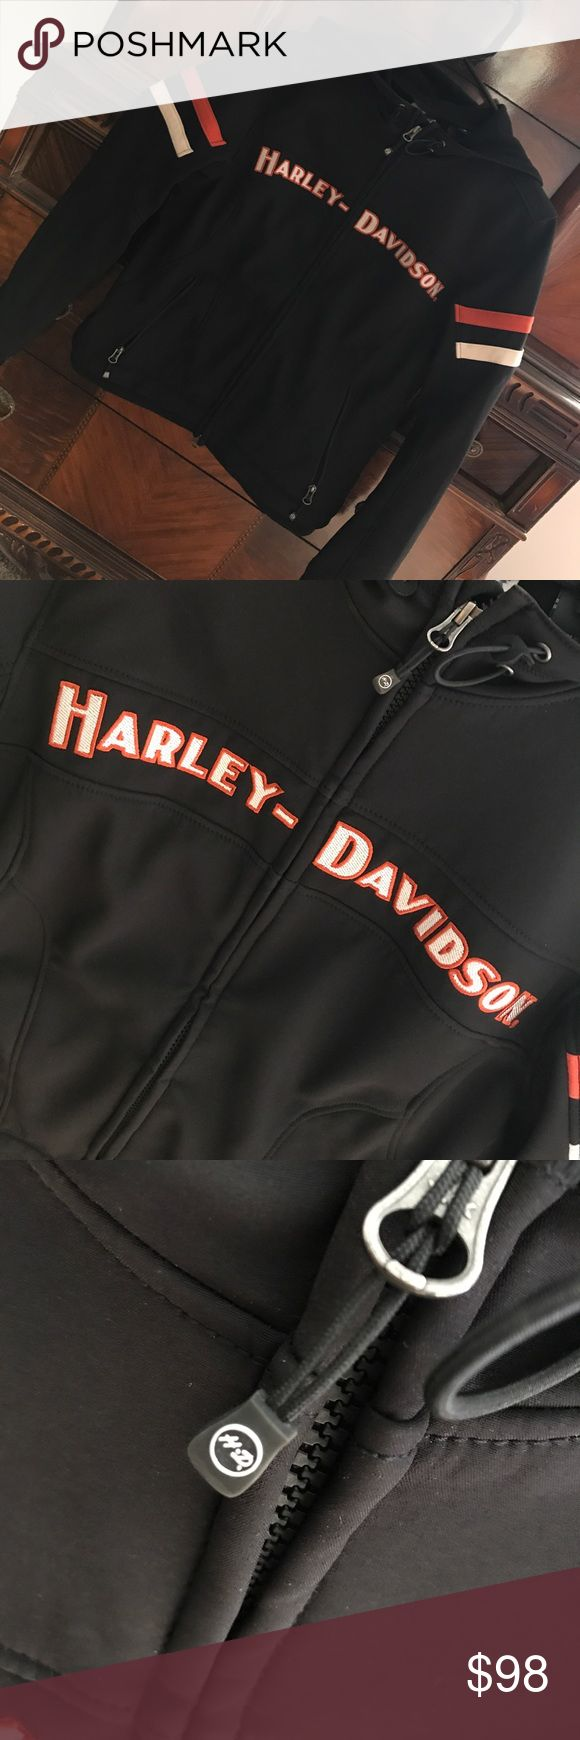 Harley Davidson Miss Enthusiast Soft Shell Jacket Worn once. I no longer ride, so parting ways. Size Medium. Very warm, can be used as a spring/fall riding jacket. Harley-Davidson Jackets & Coats